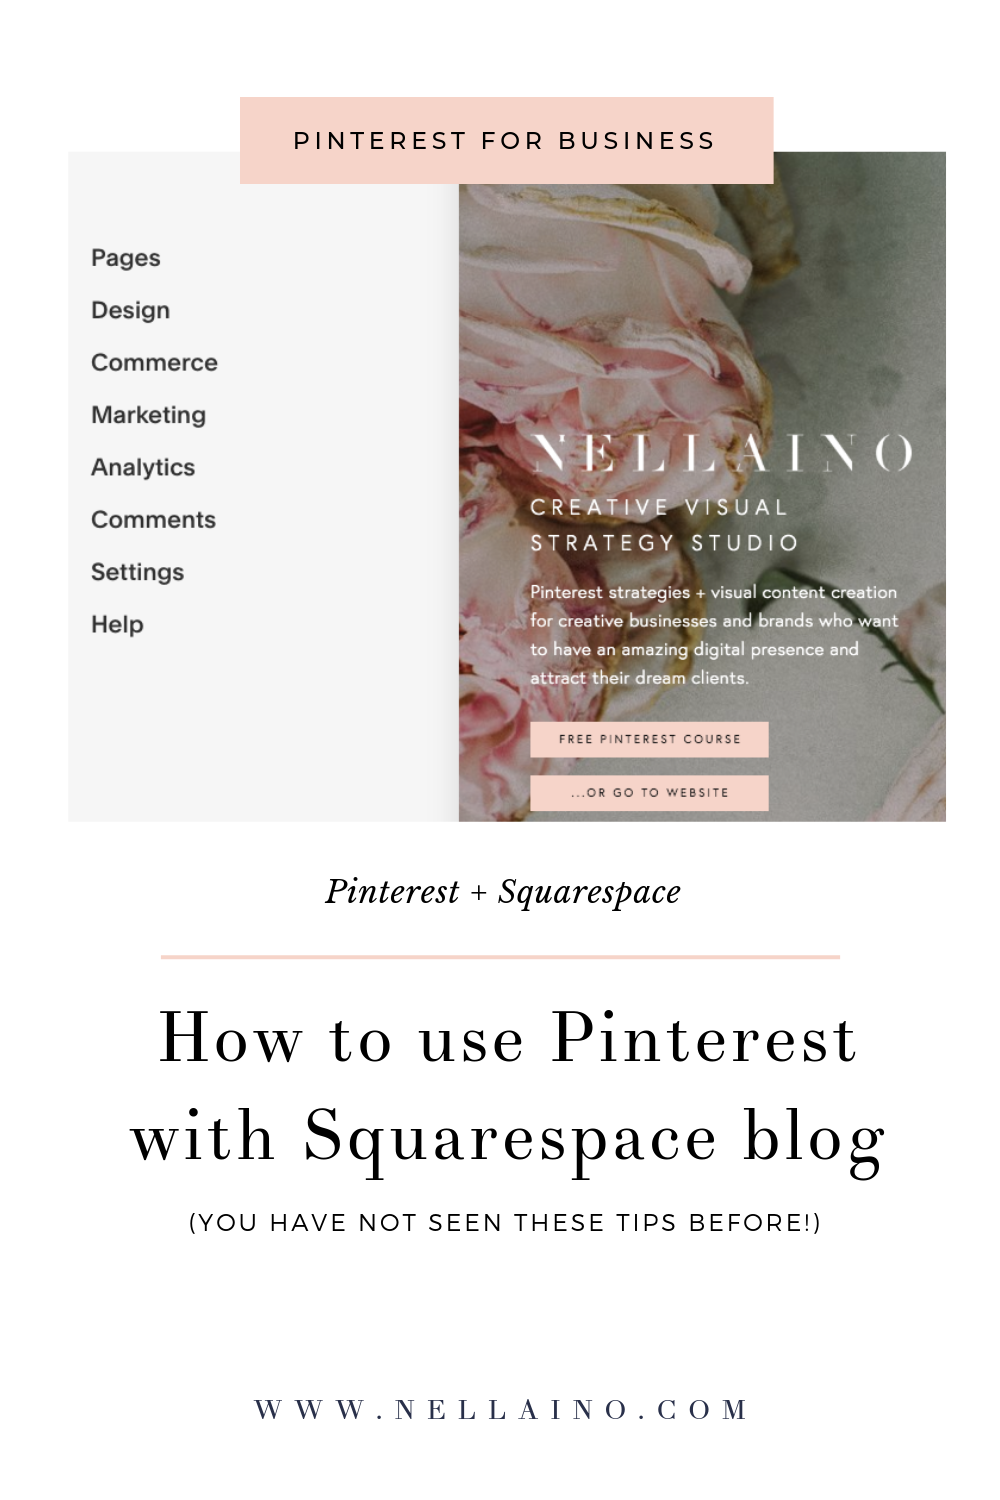 Squarespace and Pinterest are great together. Learn how to optimize your Squarespace blog for Pinterest searches and Google. Visit: www.nellaino.com/blog #pinteresttips #pinterest #squarespace #optimization #seotips